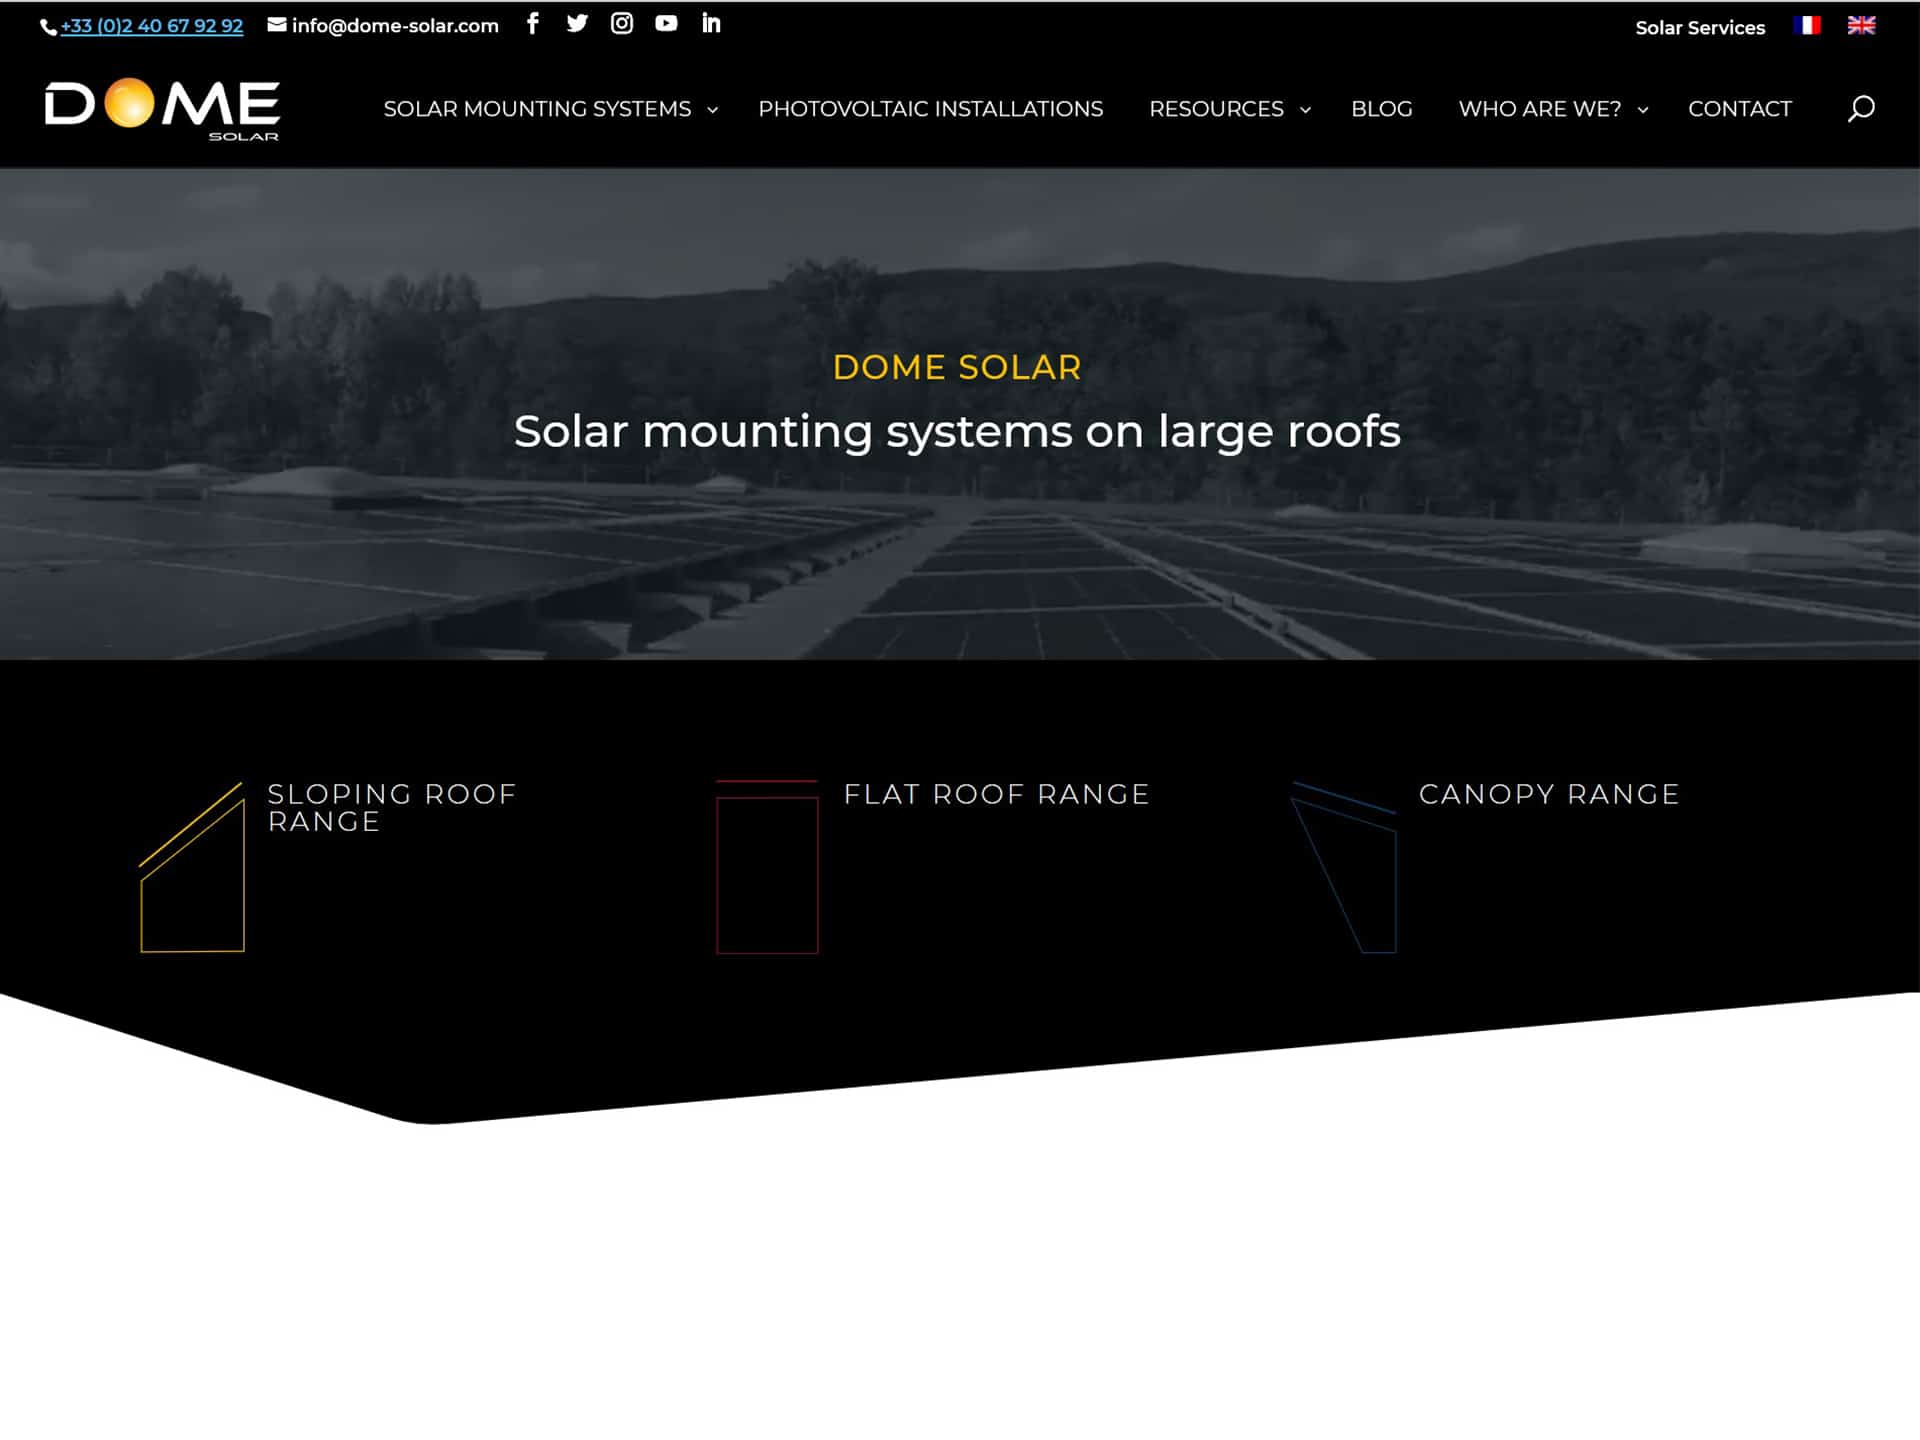 Launch of the new Dome Solar website